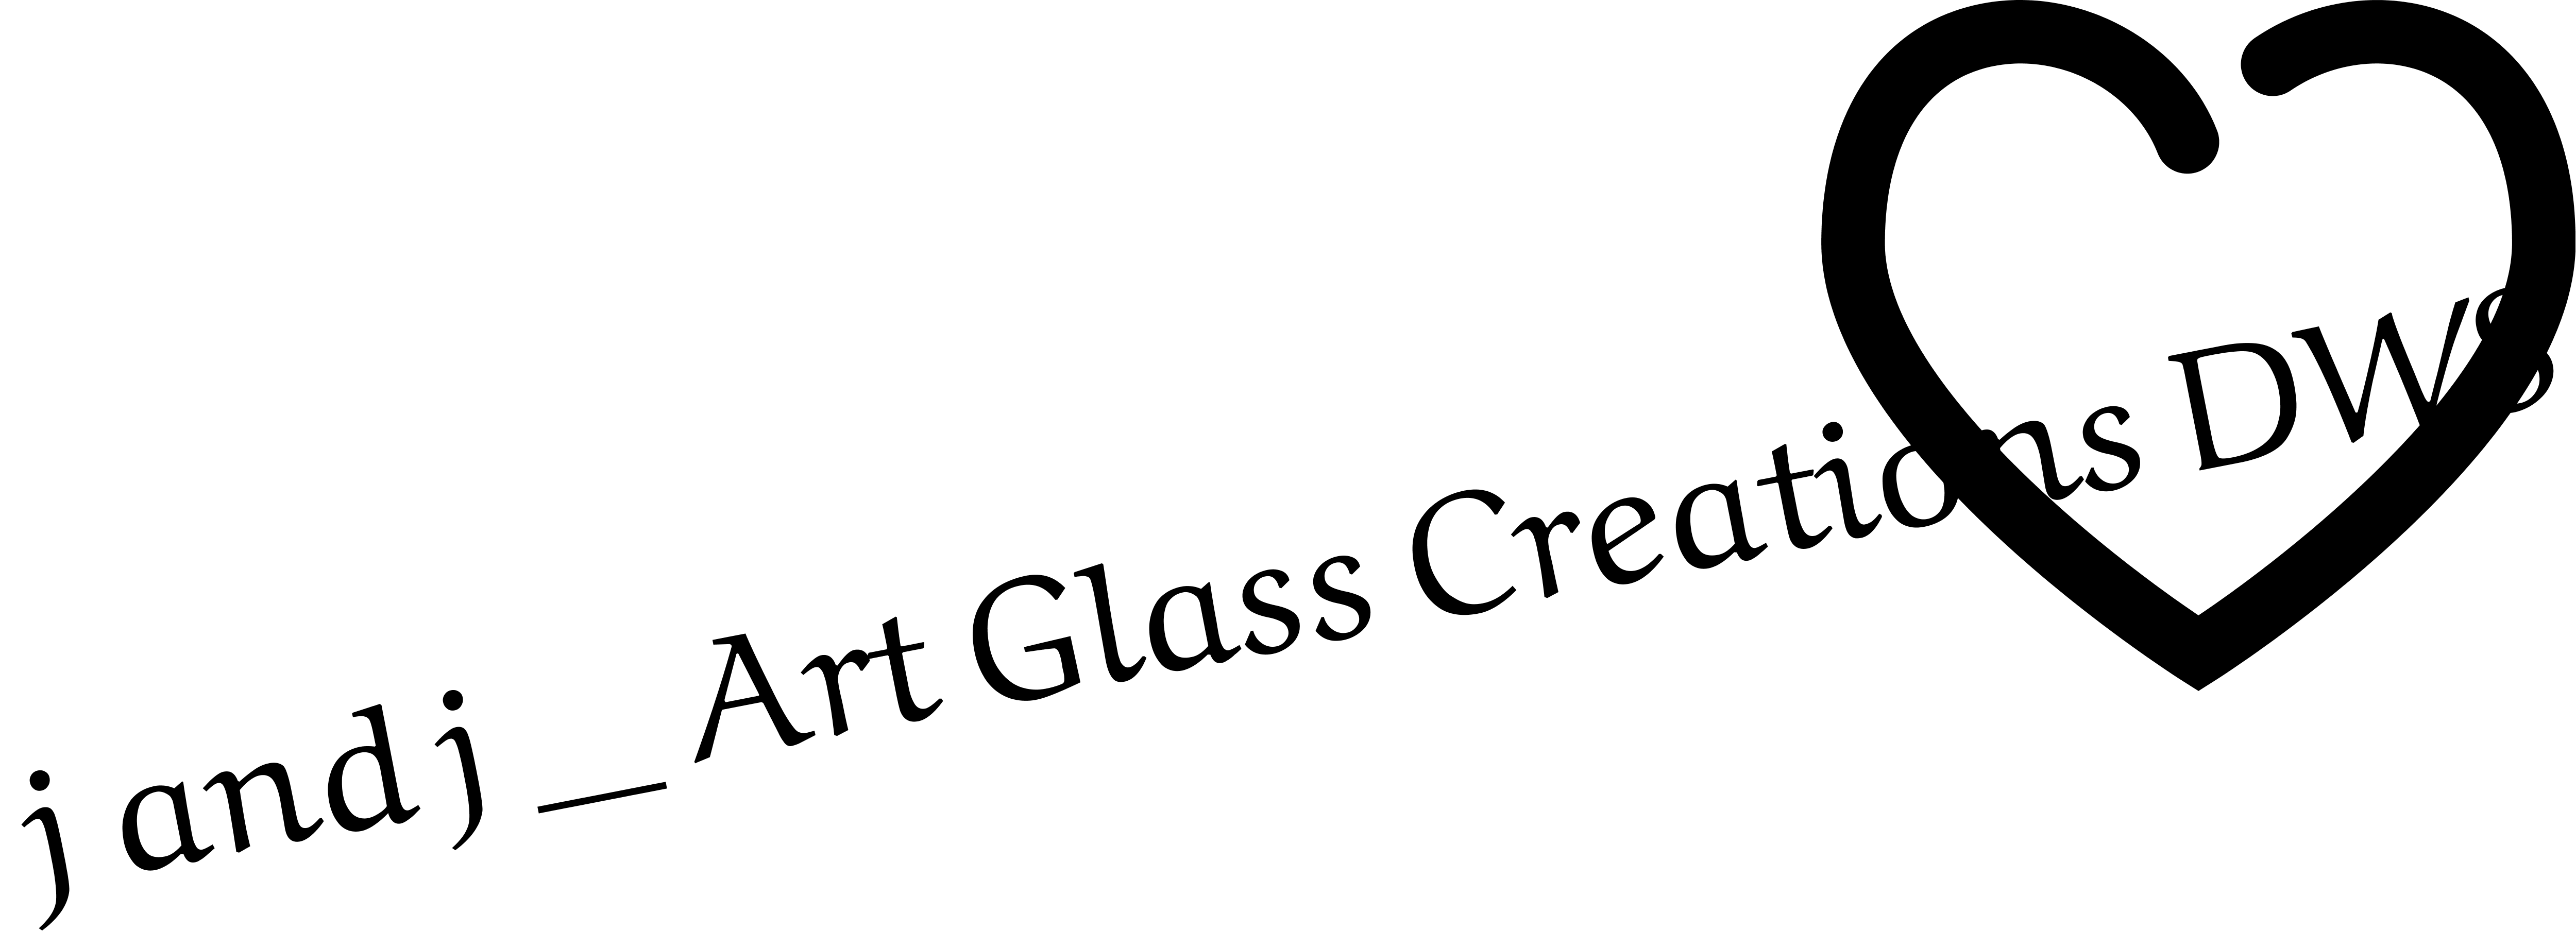 10. Art Glass (Premier)